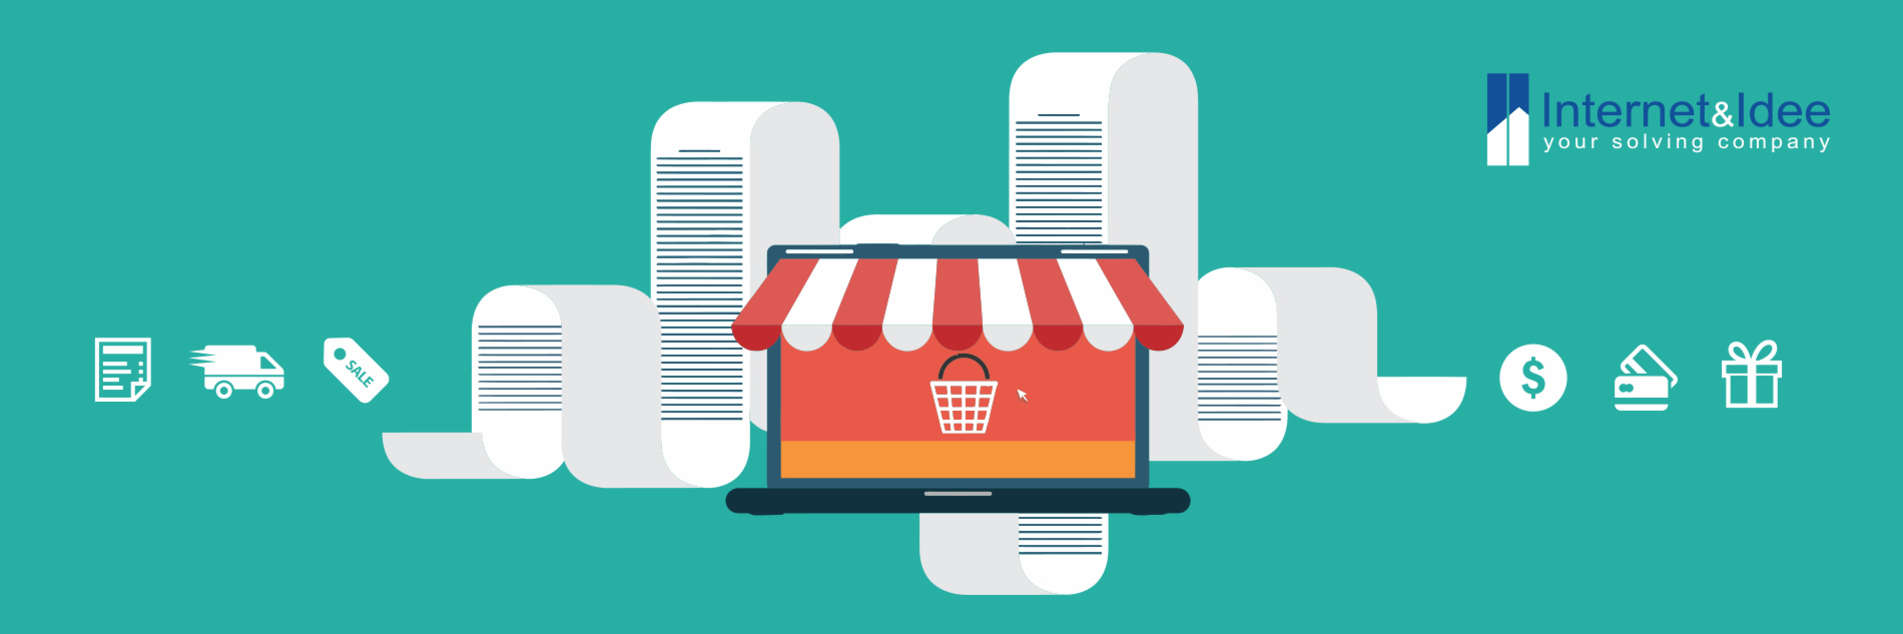 Unified Commerce: The business solution for successful companies